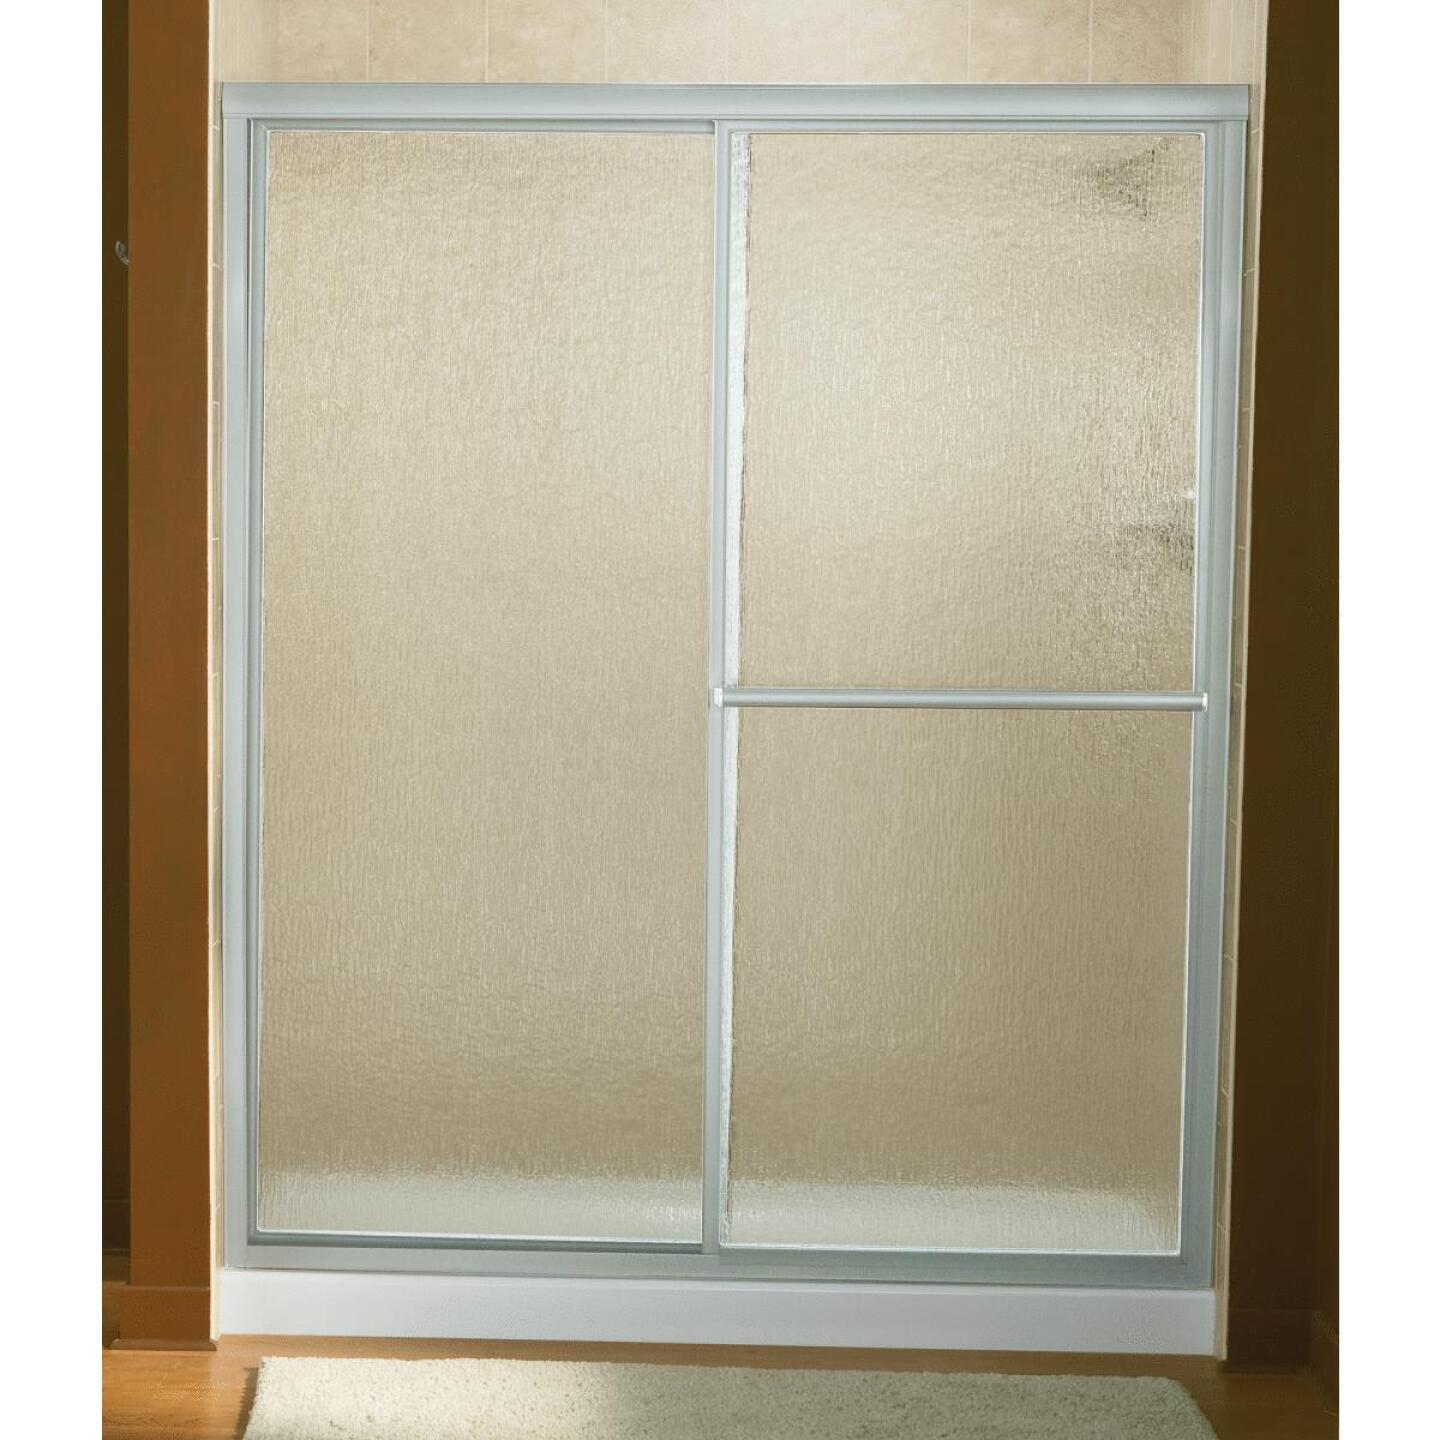 Sterling Deluxe 59-3/8 In. W. X 70 In H. Chrome Rain Glass Sliding Shower Door Image 1